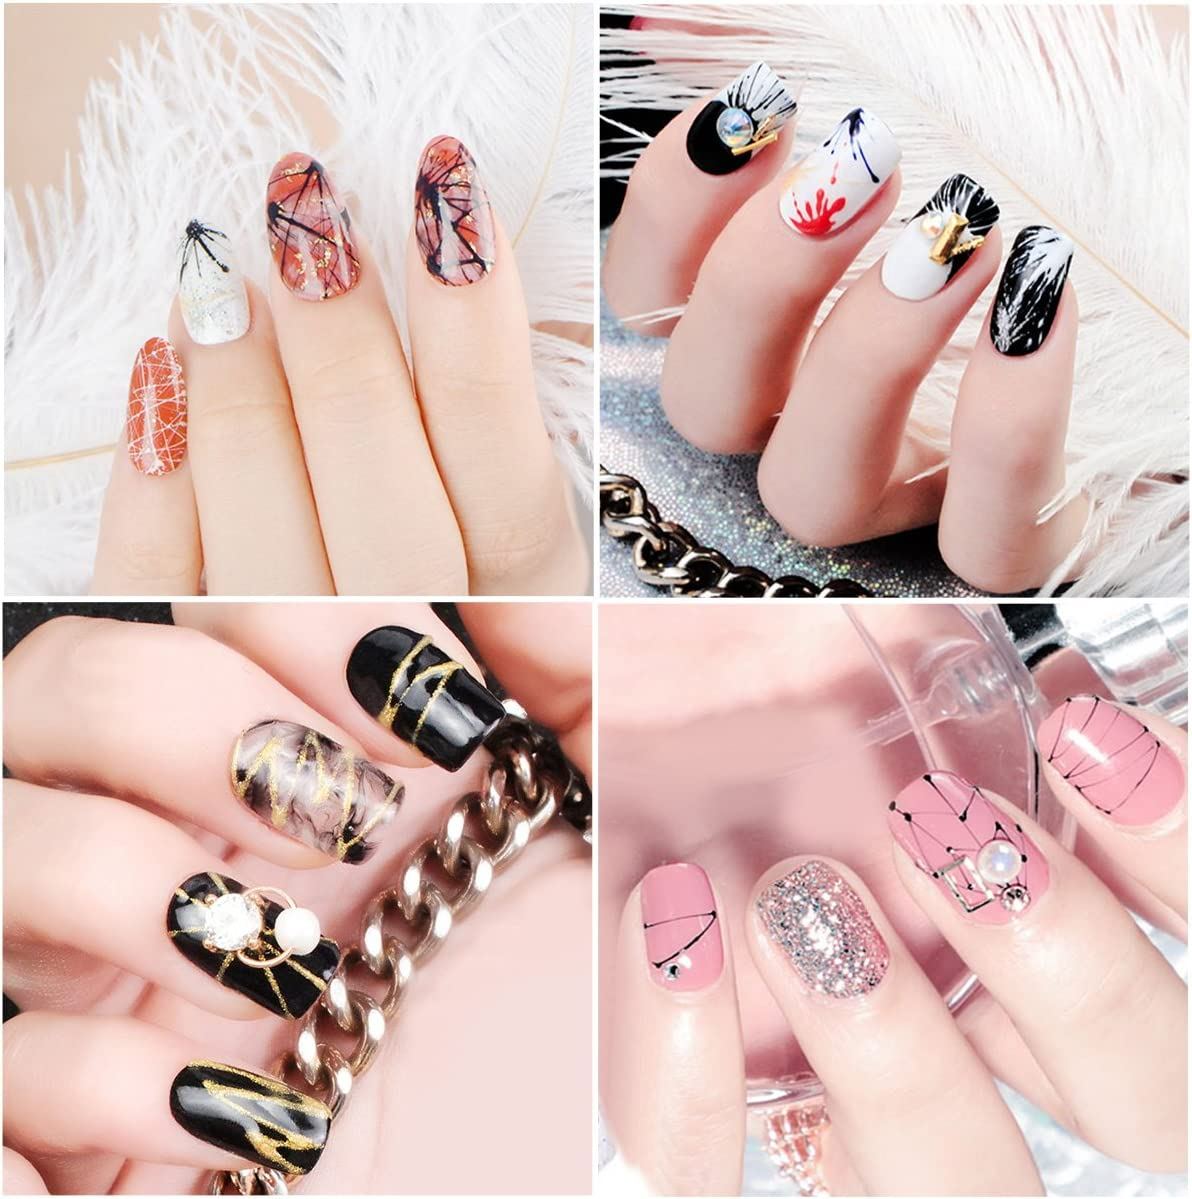 Buy Saviland 6 Colors Spider Gel and Painting Pen, Matrix Gel with Gel  Paint Design Nail Art Wire Drawing Gel for Line (White, Black, Red, Blue,  Yellow, Silver) Online at Low Prices